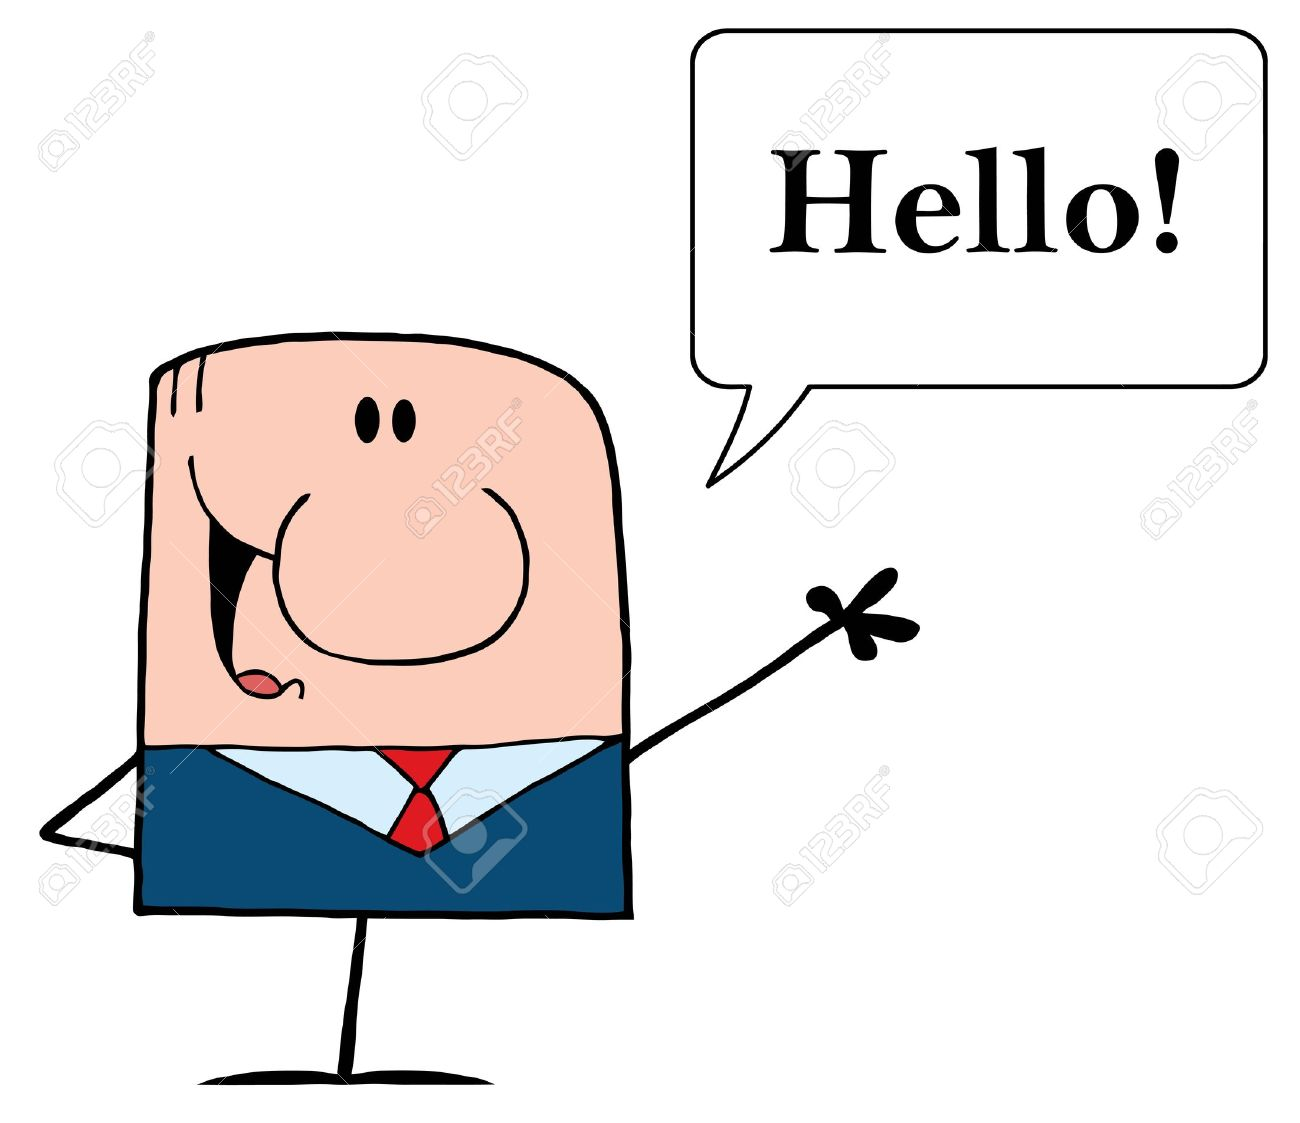 Image result for hello cartoon image